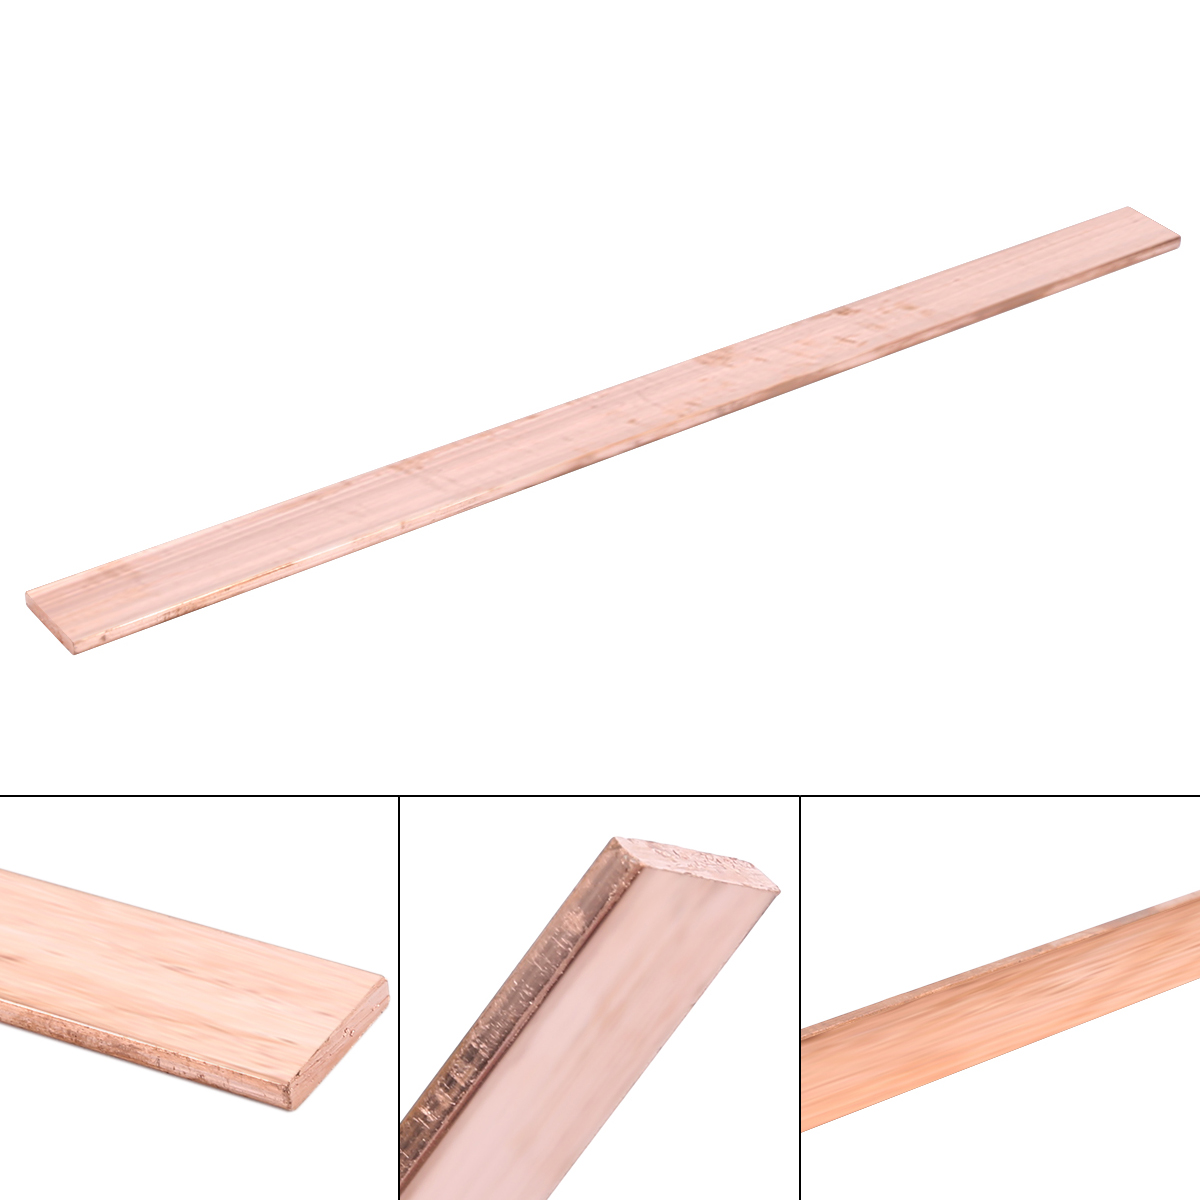 1pcs 99.9/% T2 Pure Copper Cu Metal Sheet Plate 2 x 100 x 150mm